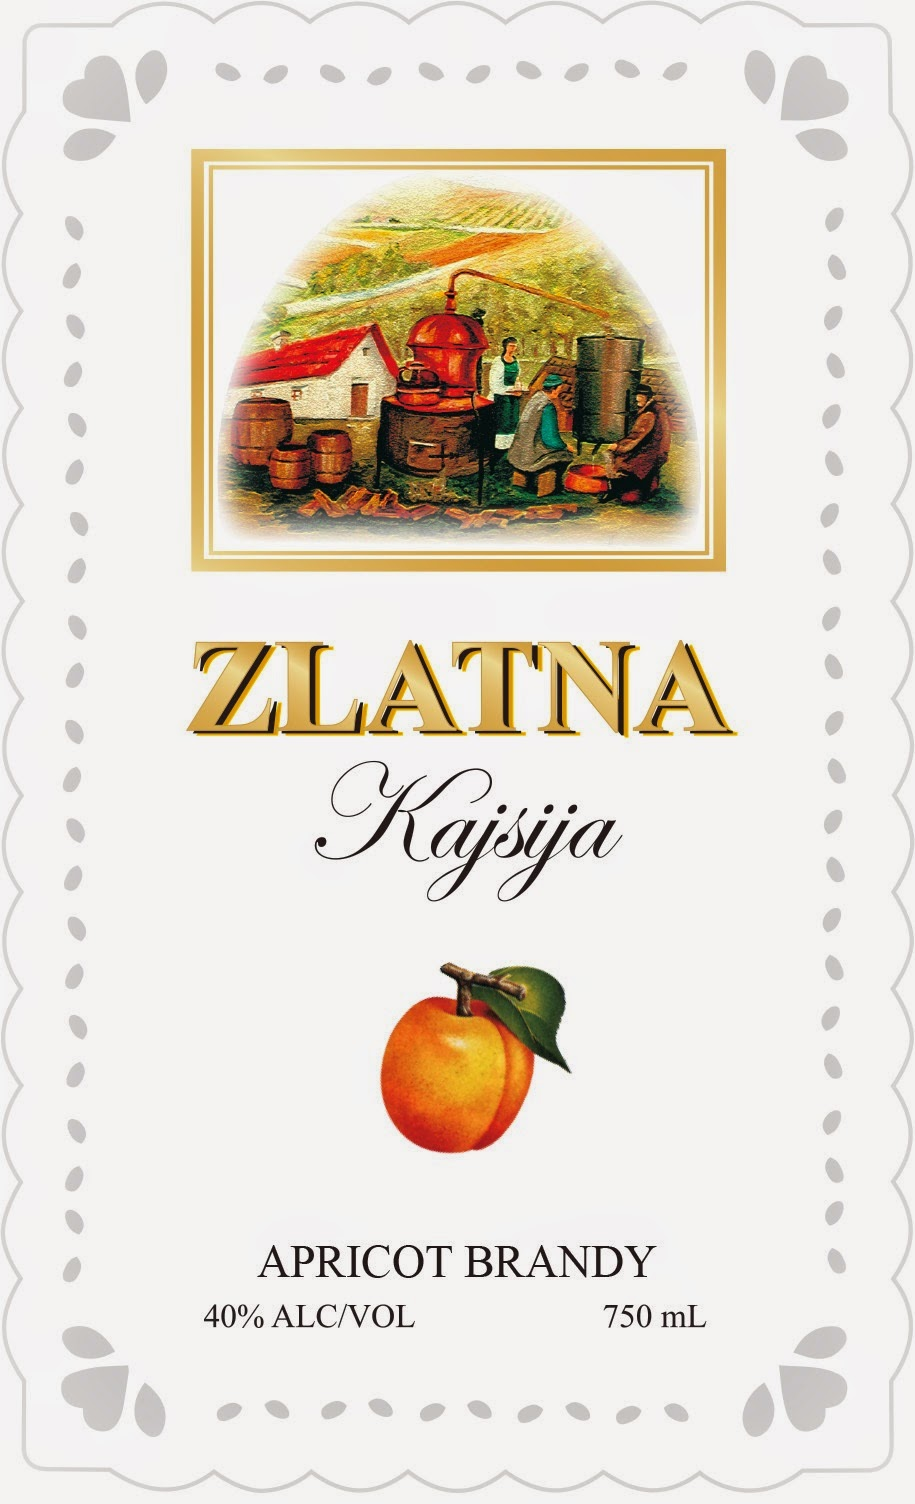 Zlatna Quince Brandy and Apricot Brandy